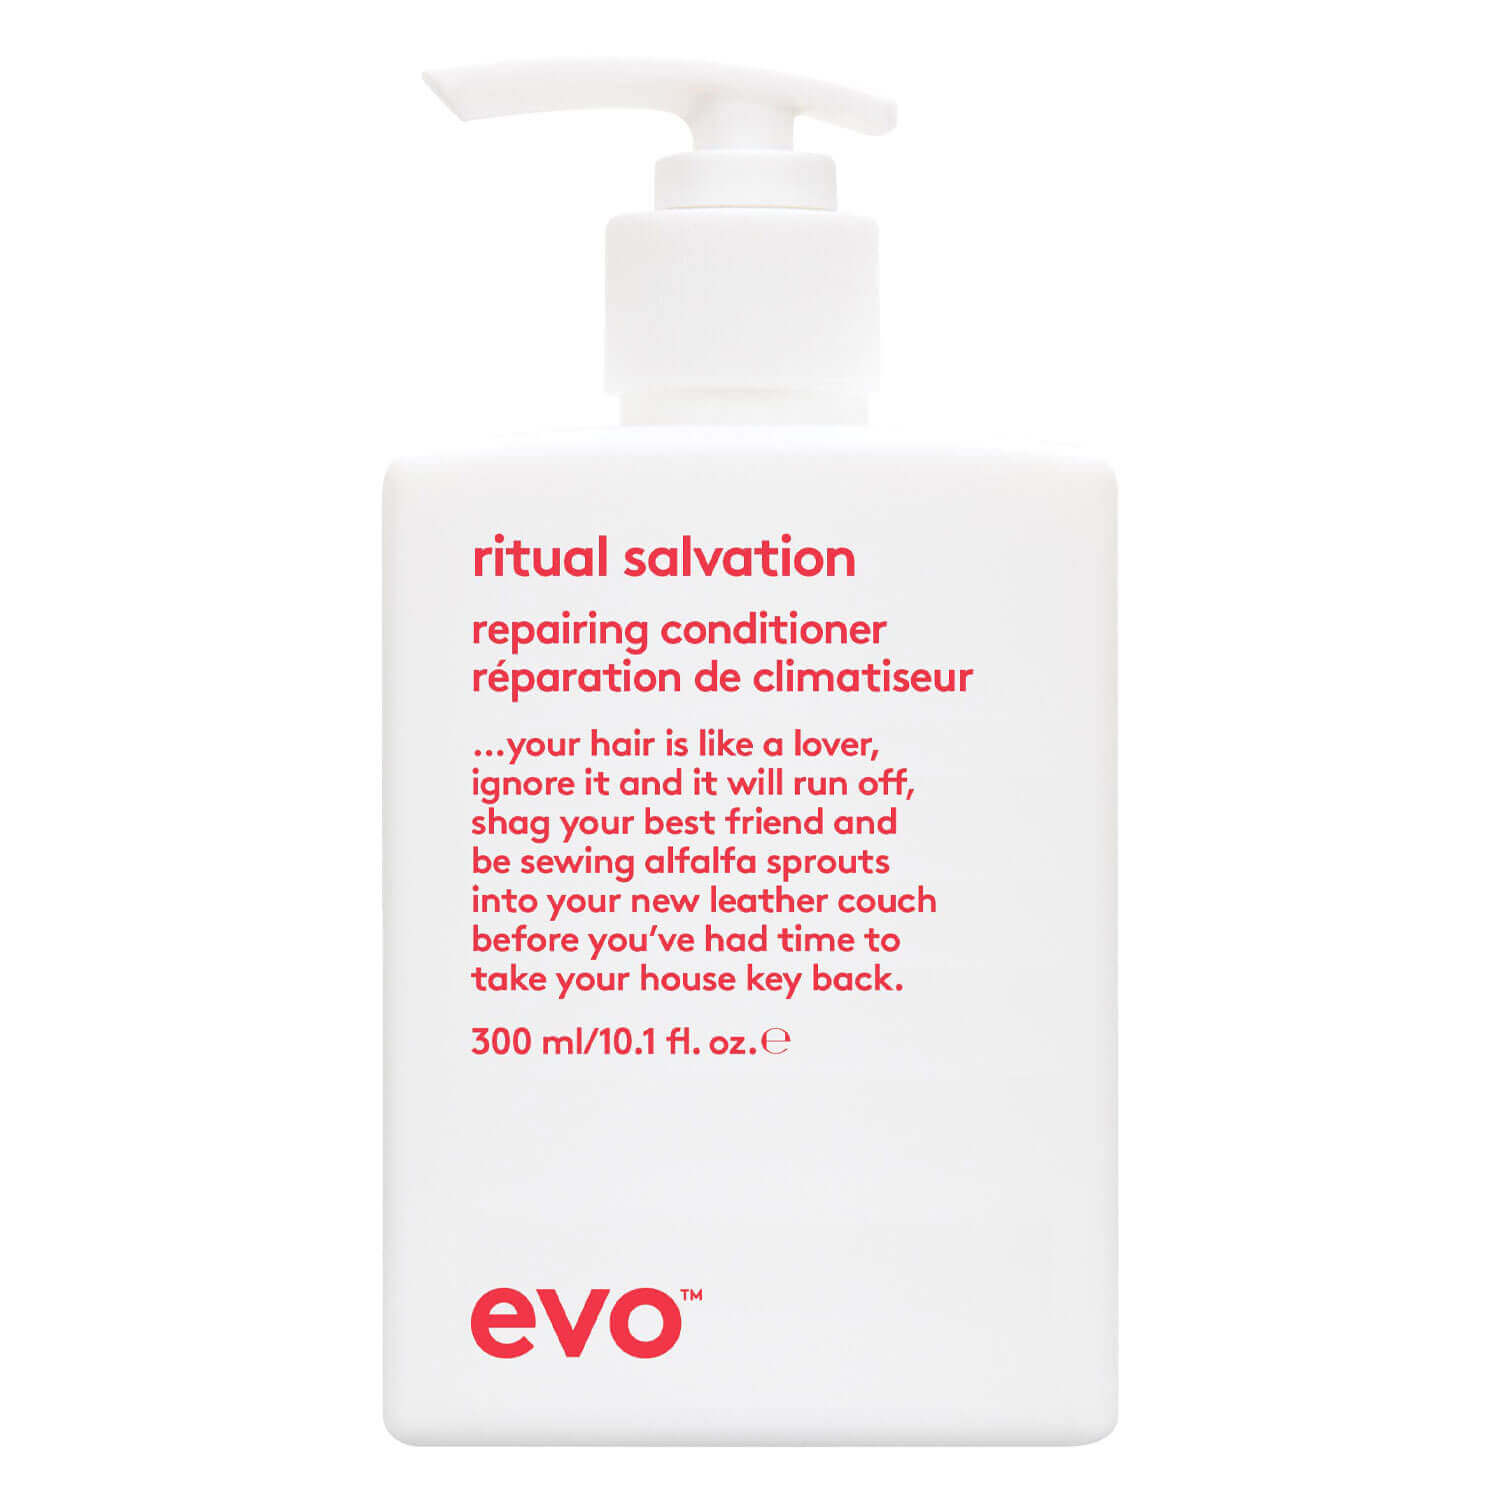 evo care - ritual salvation care conditioner